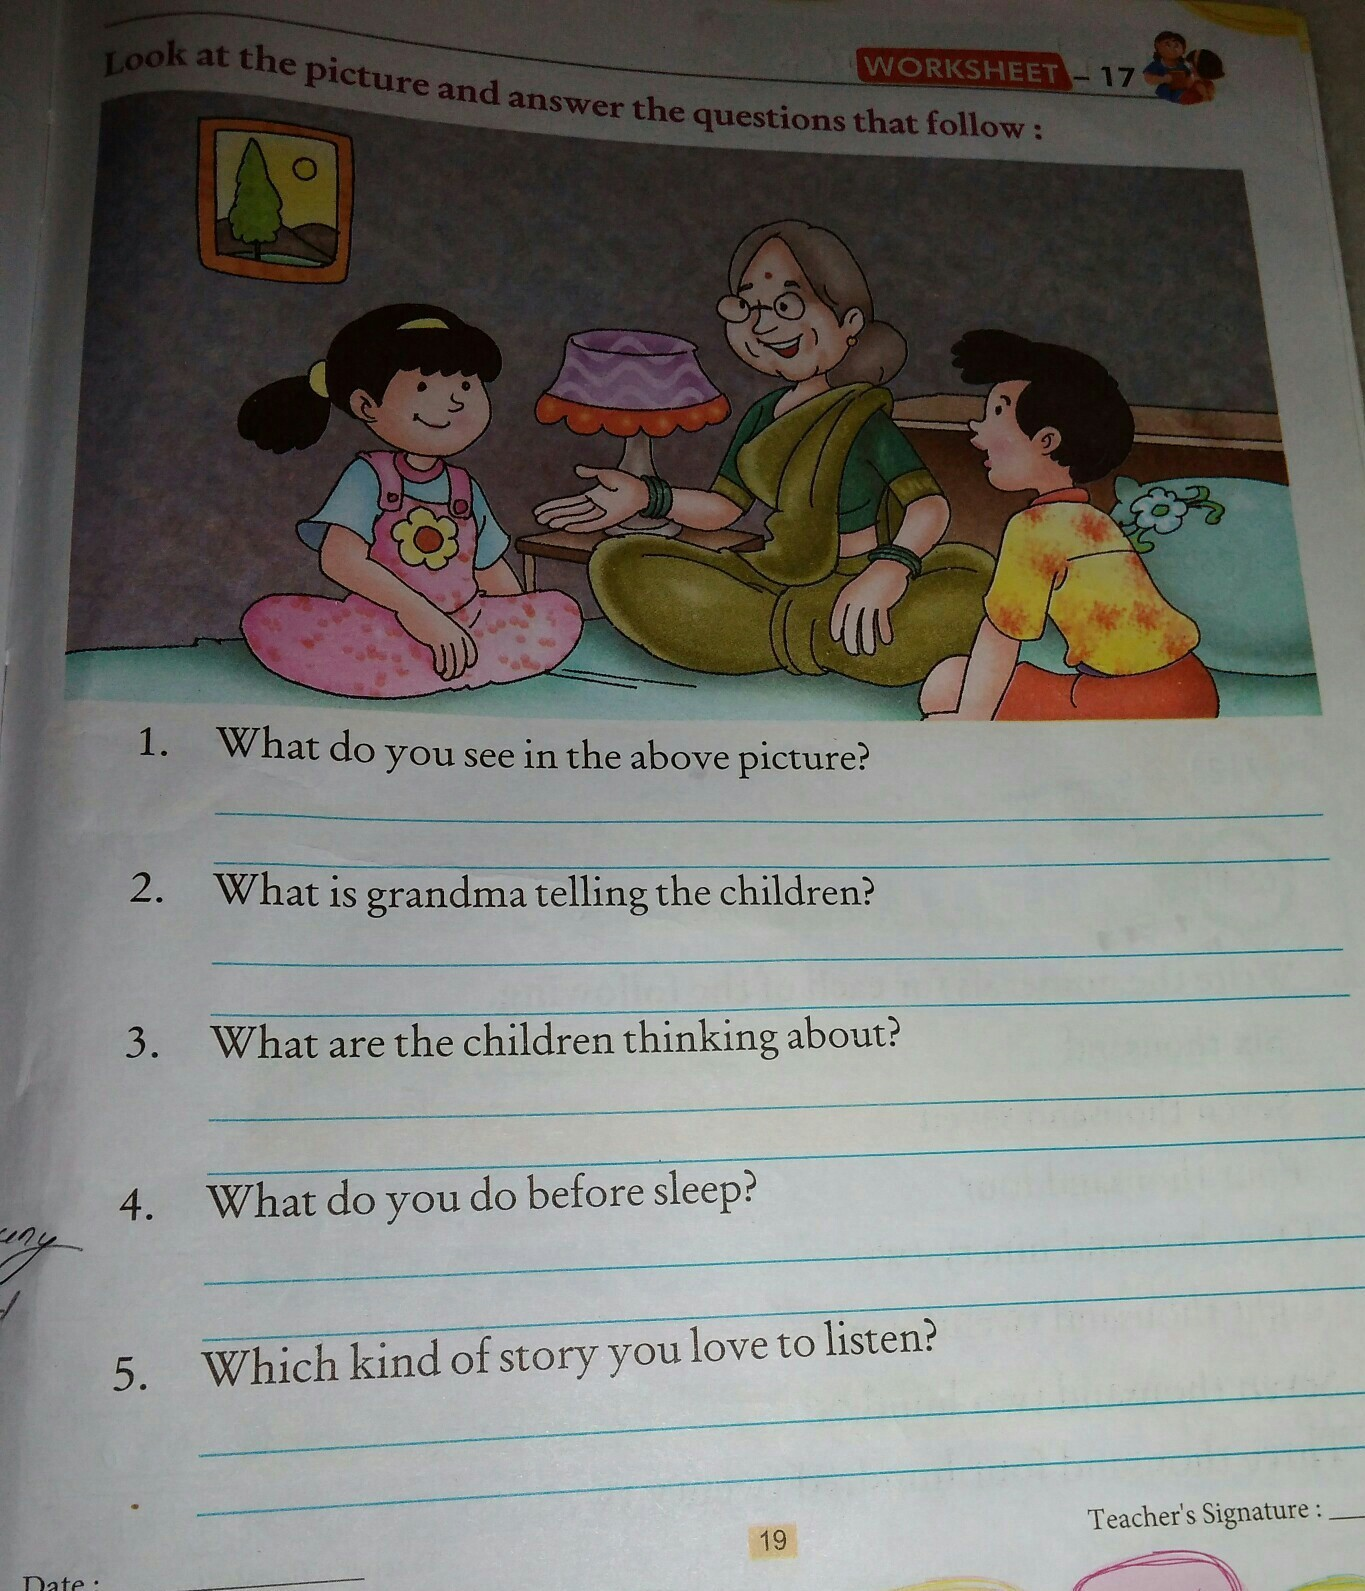 look. at the picture and answer the questions that follows ...